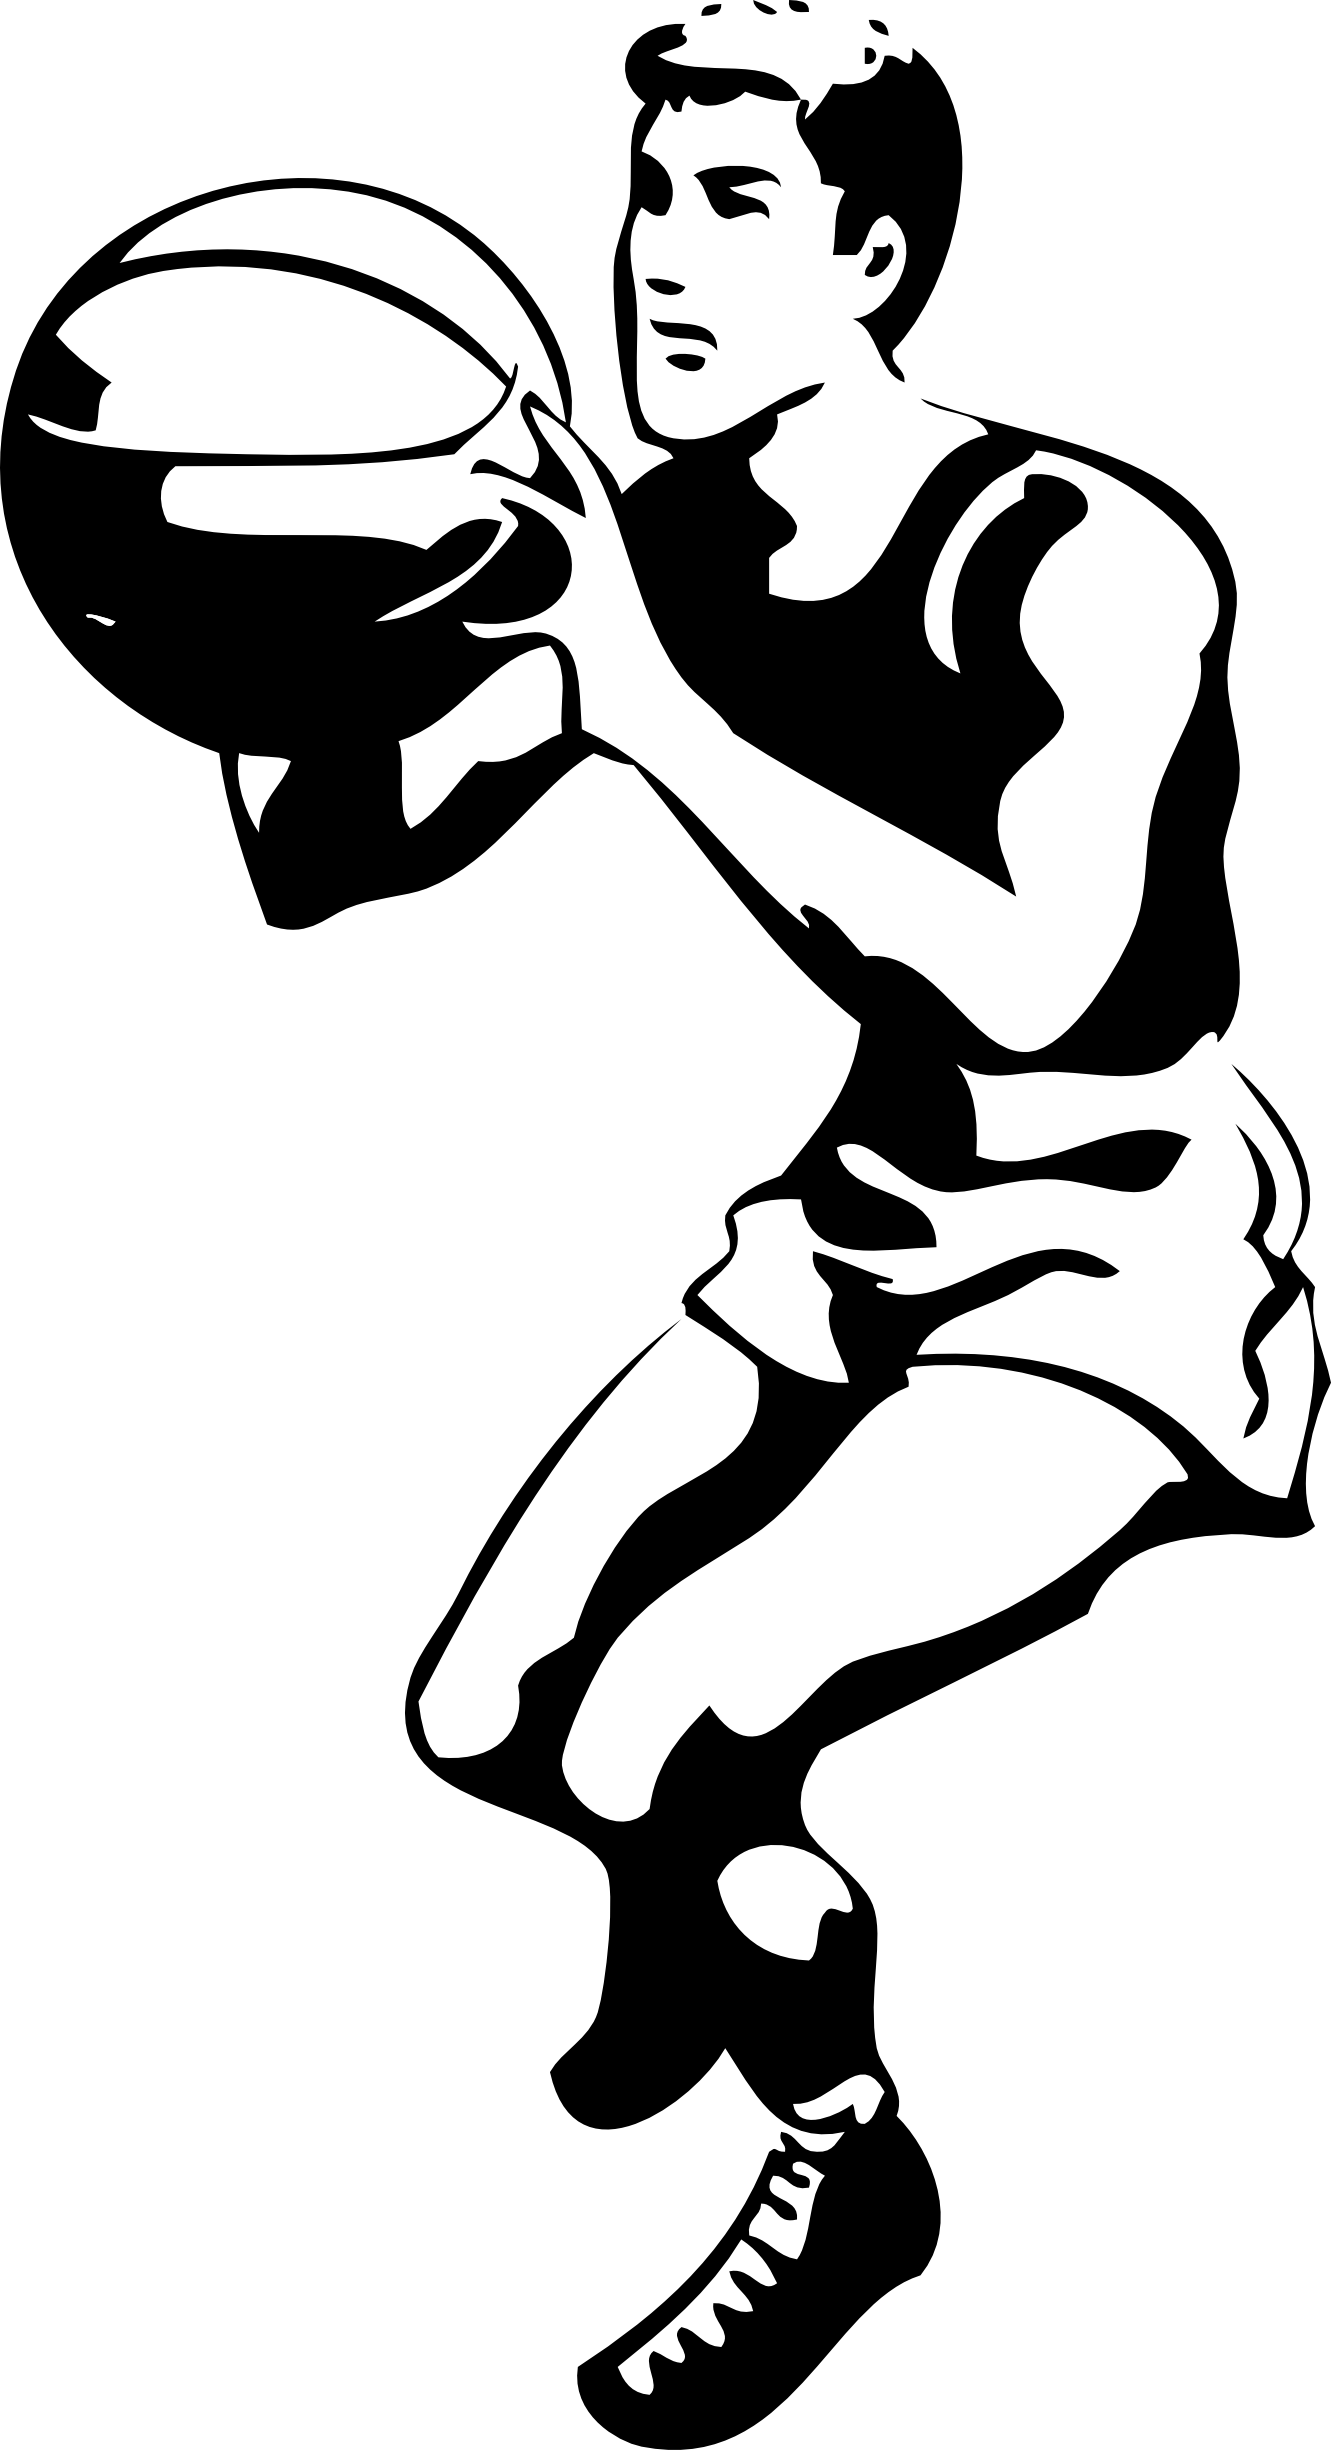 Female basketball clipart jpg royalty free library Basketball Player Clipart Black And White | Clipart Panda - Free ... jpg royalty free library